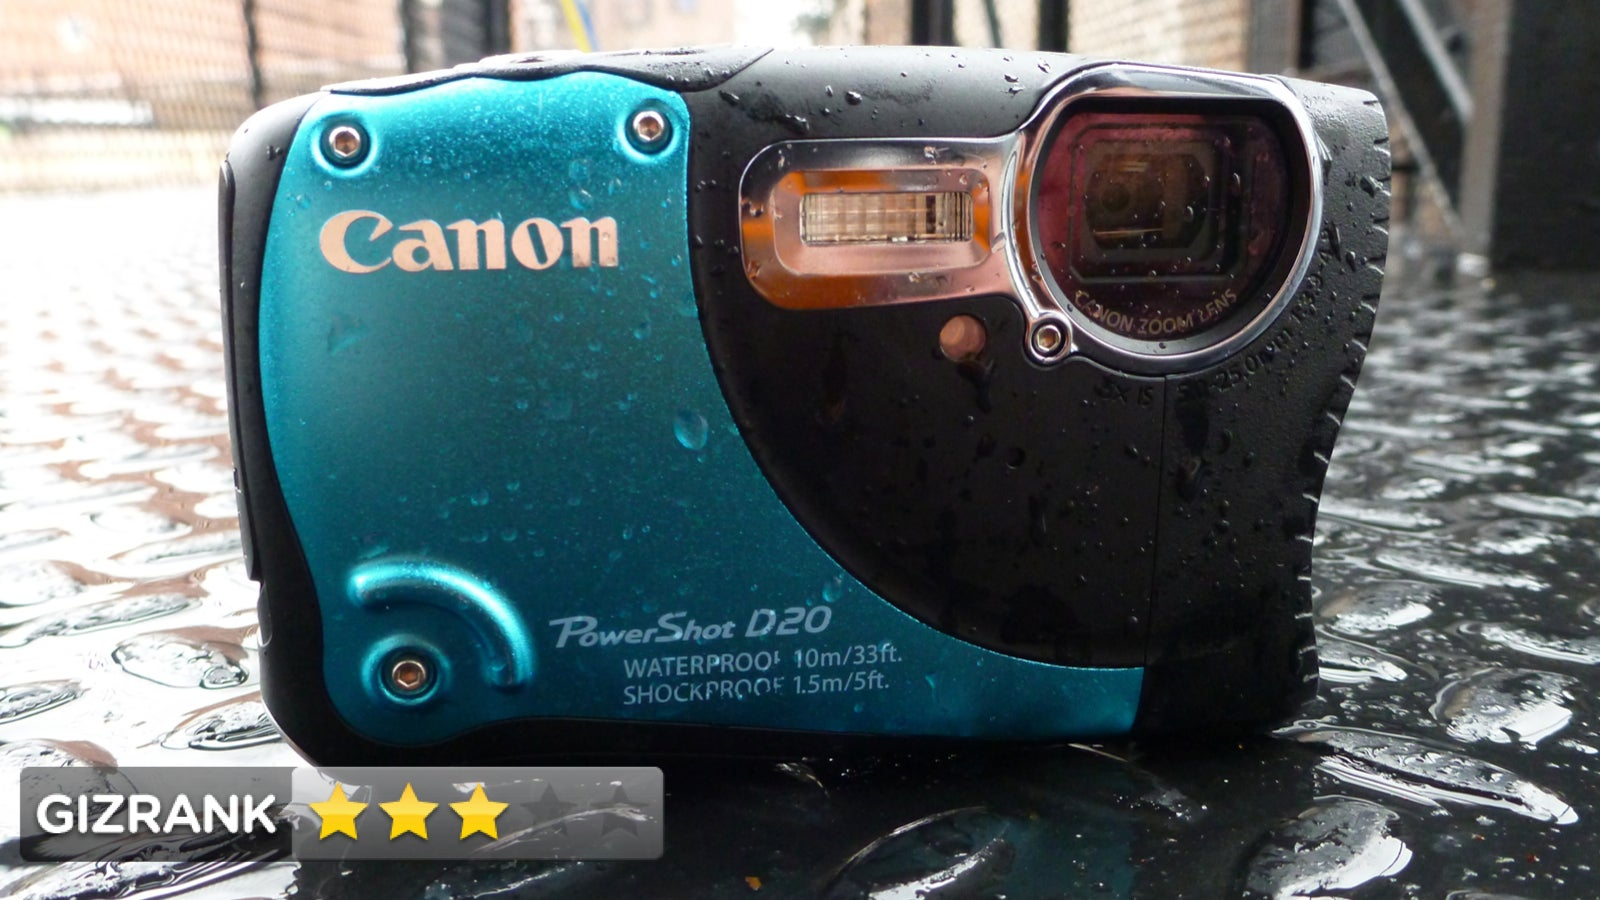 canon powershot d20 review tough camera weak performance